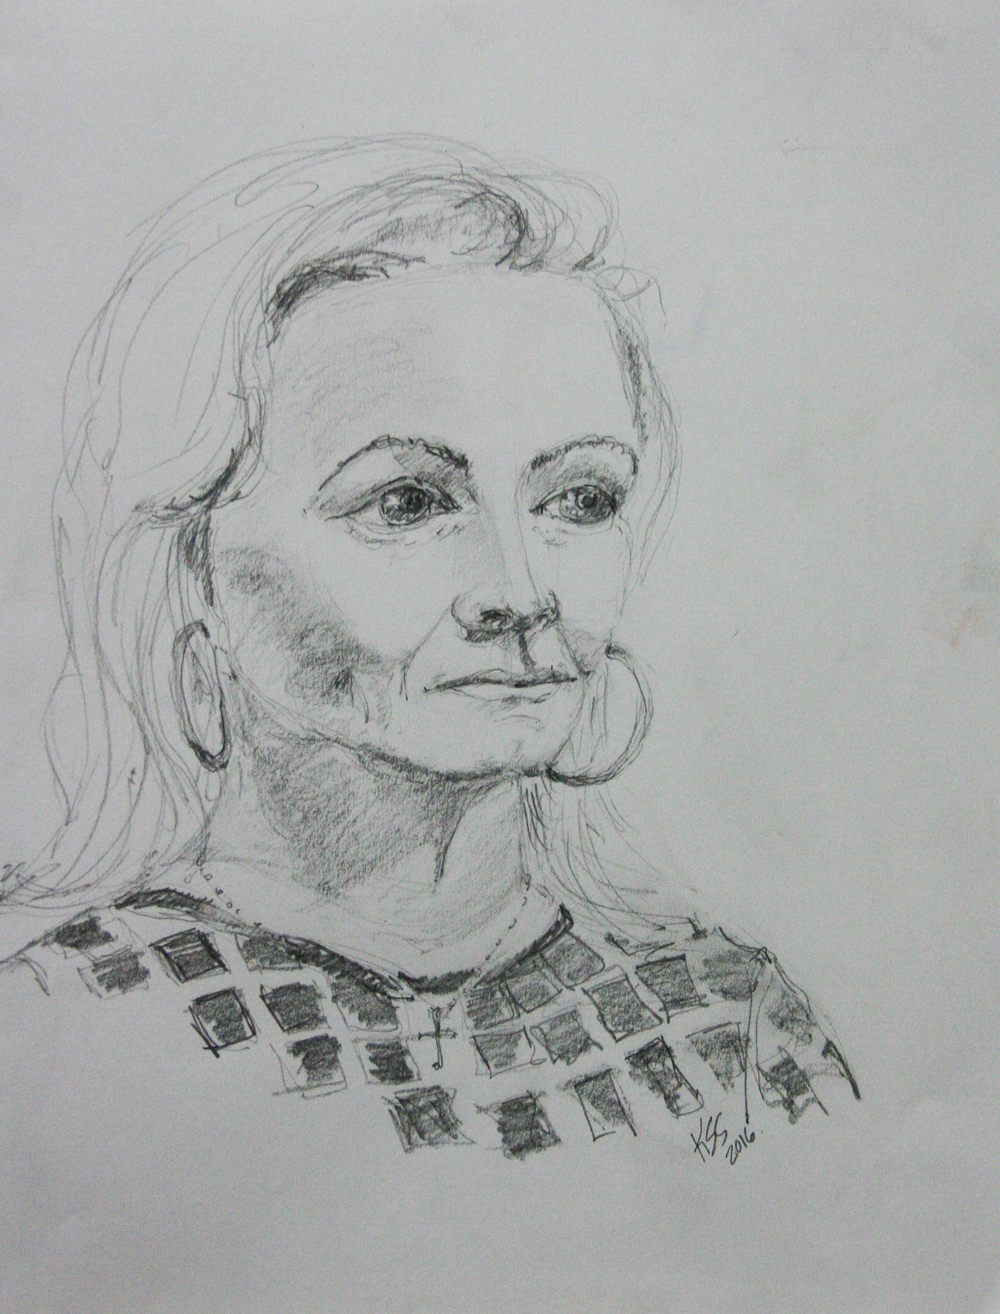 Katherine Stokes-Shafer did this 45-minute drawing.